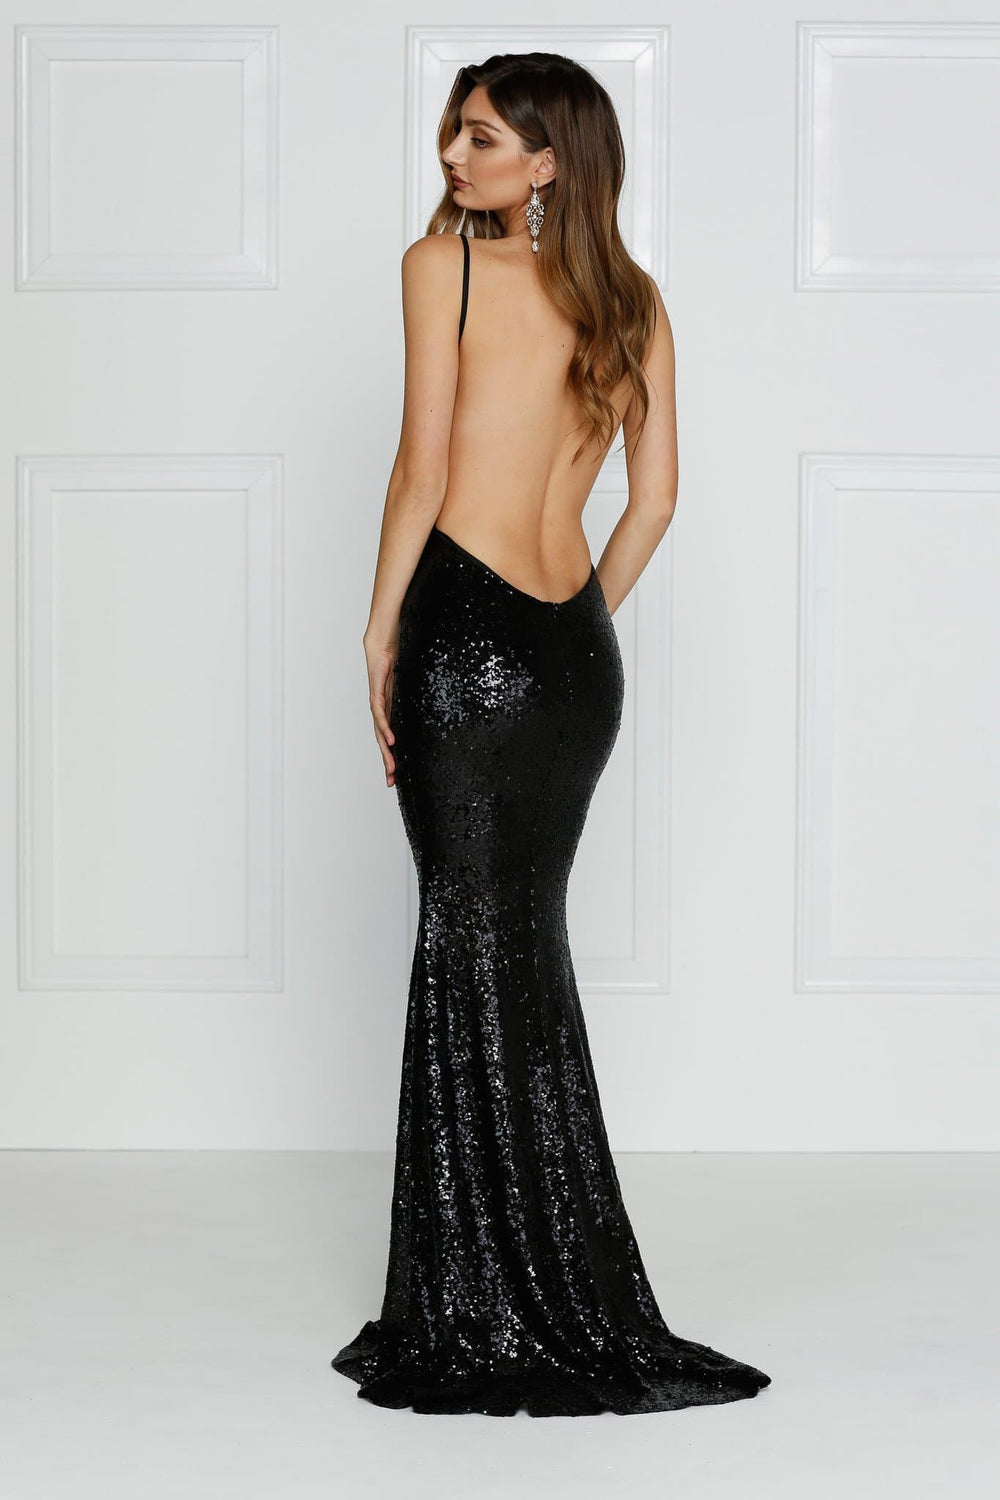 Yassmine - Black Sequin Sleeveless Gown with V-Neckline and Open Back